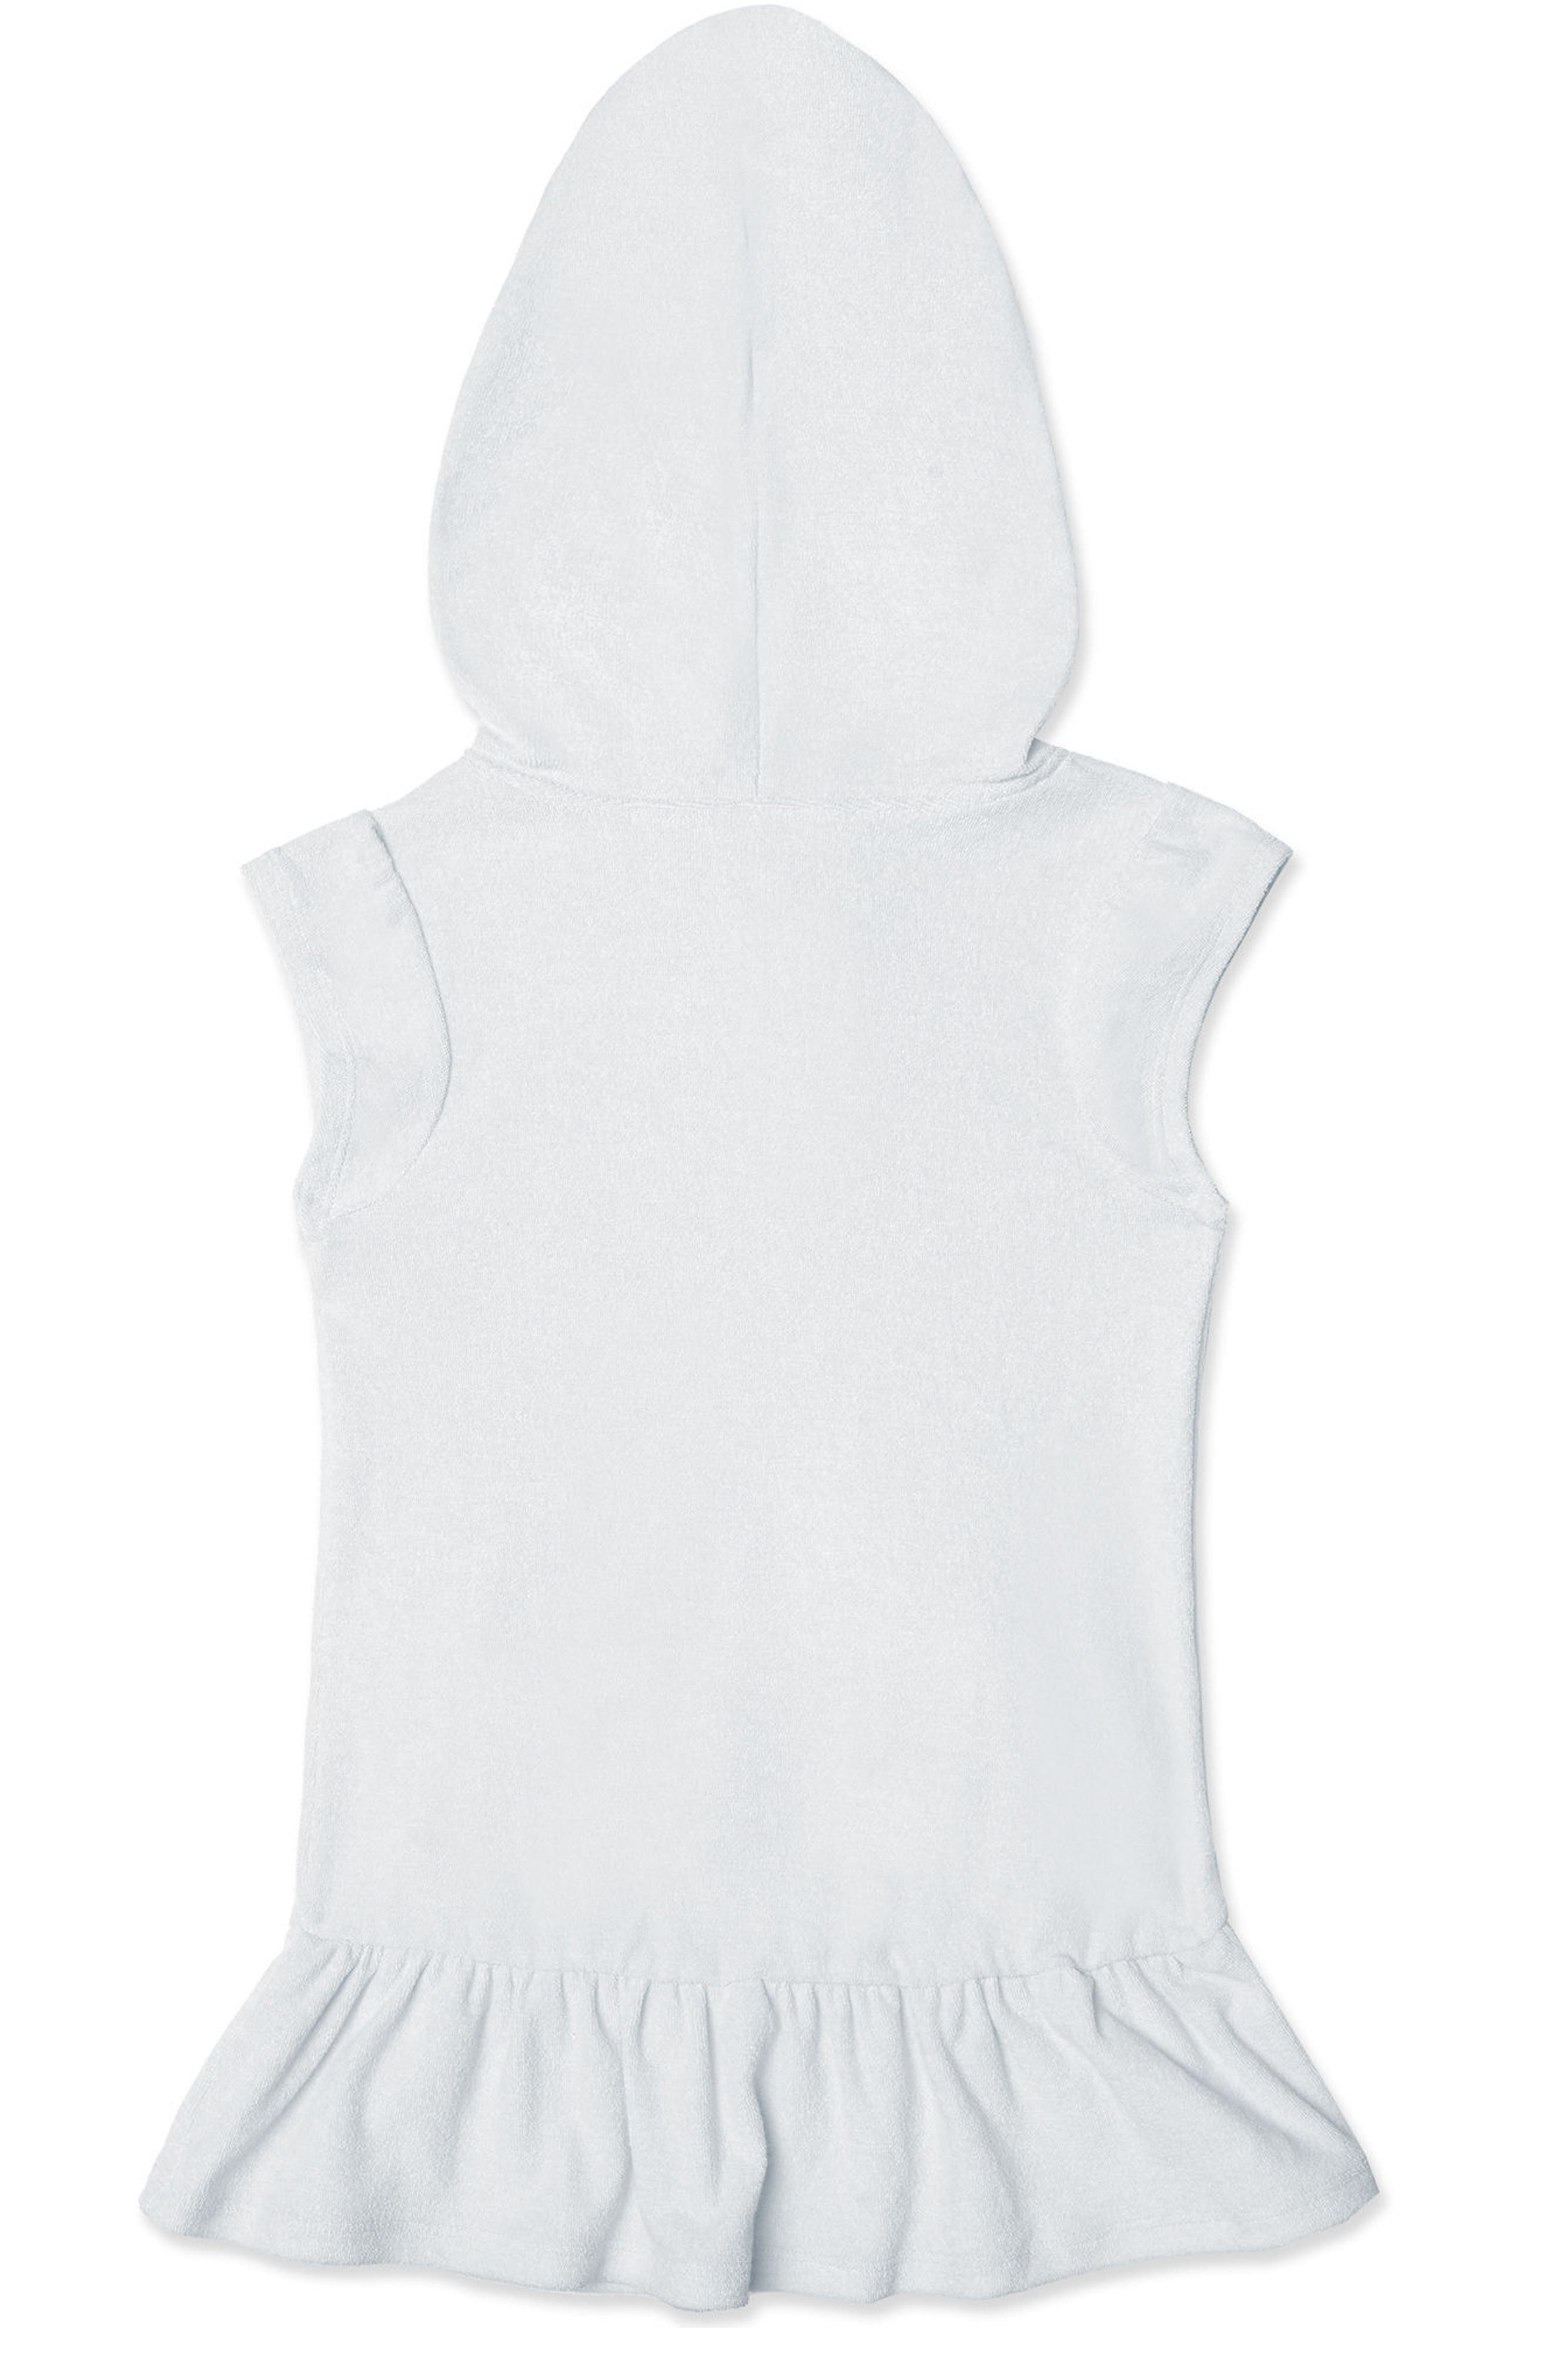 HULA STAR,                             Cotton Cloud Hooded Cover-Up Dress,                             Alternate thumbnail 3, color,                             WHITE